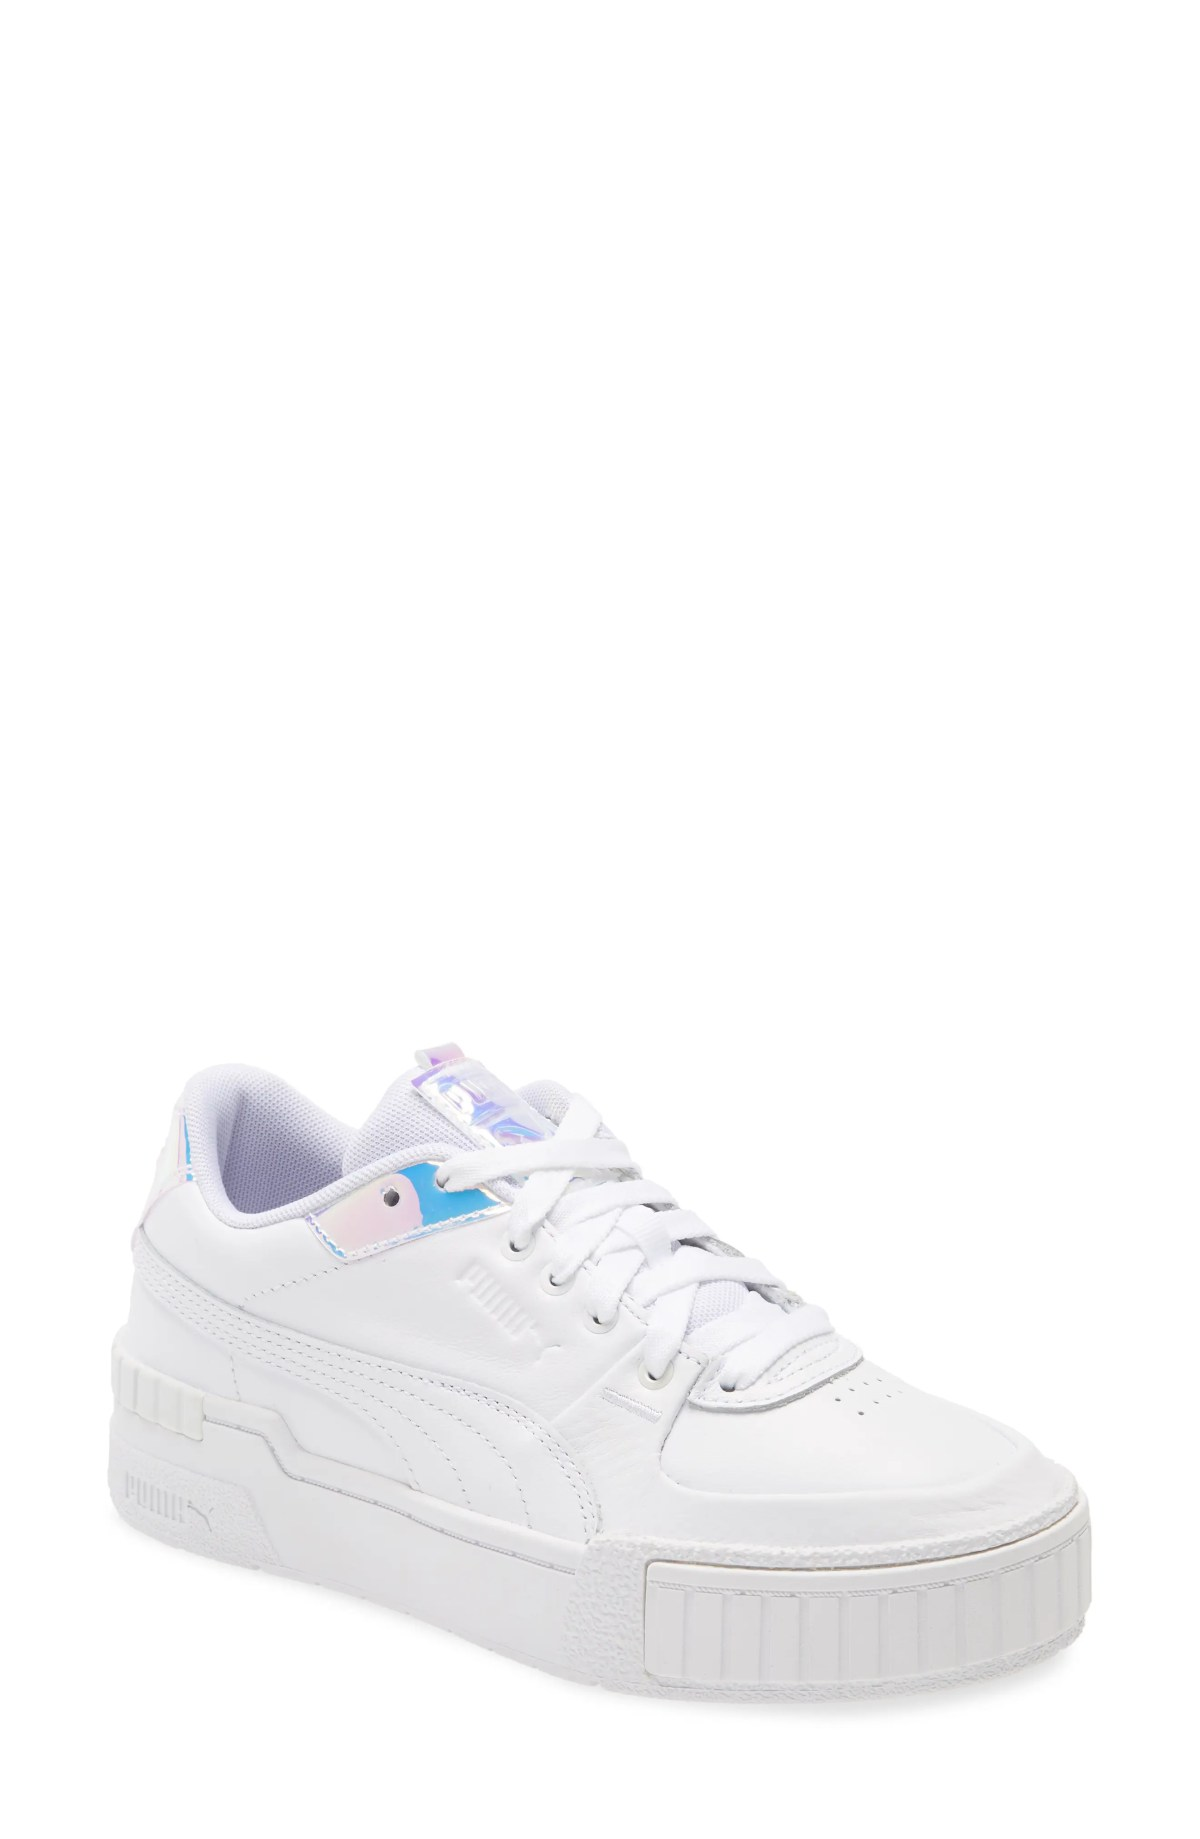 PUMA Cali Sport Glow Sneaker, Main, color, PUMA WHITE/ PURPLE HEATHER